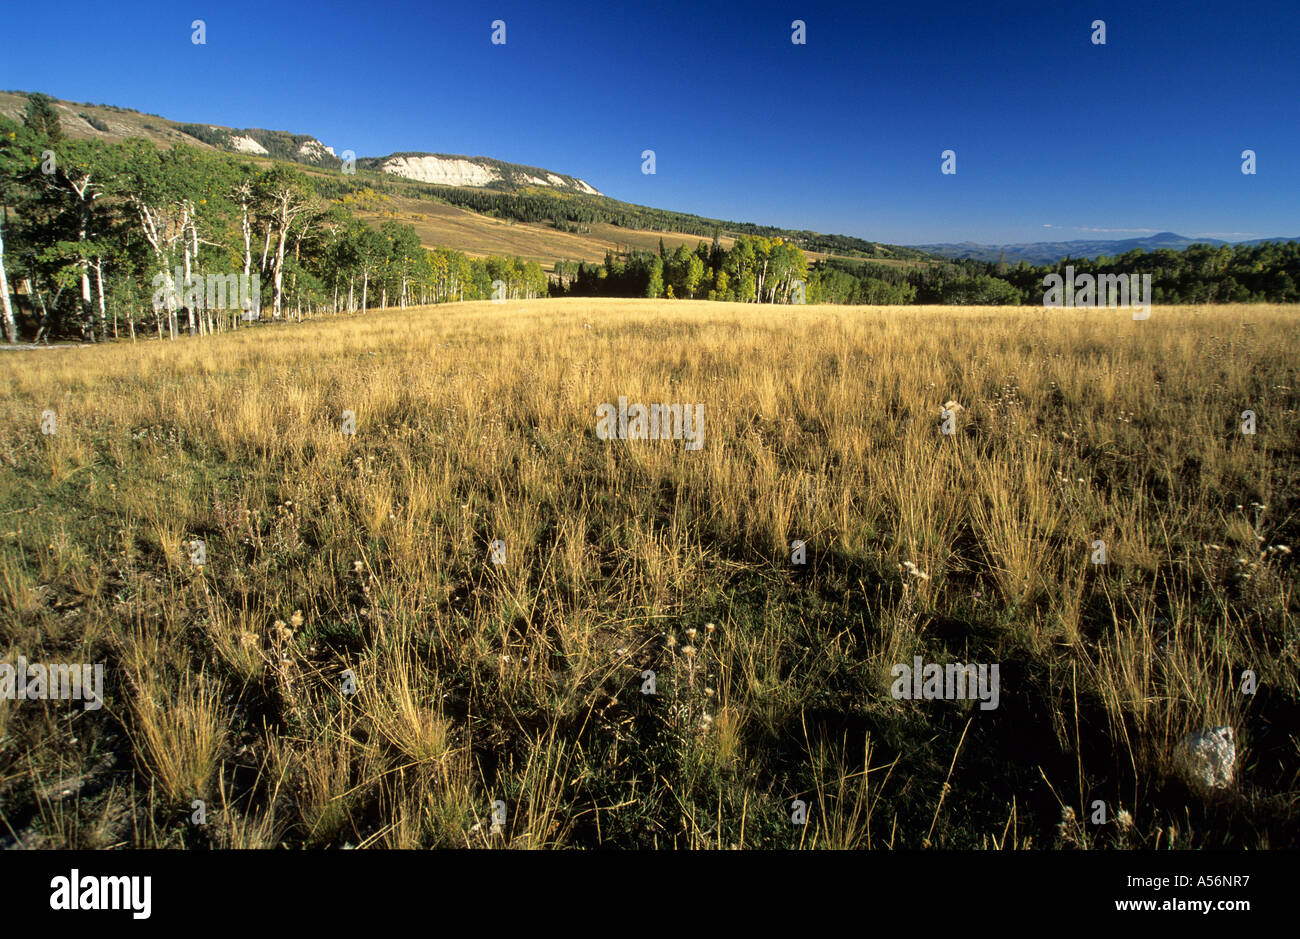 High country on the Wasatch Plateau - Stock Image